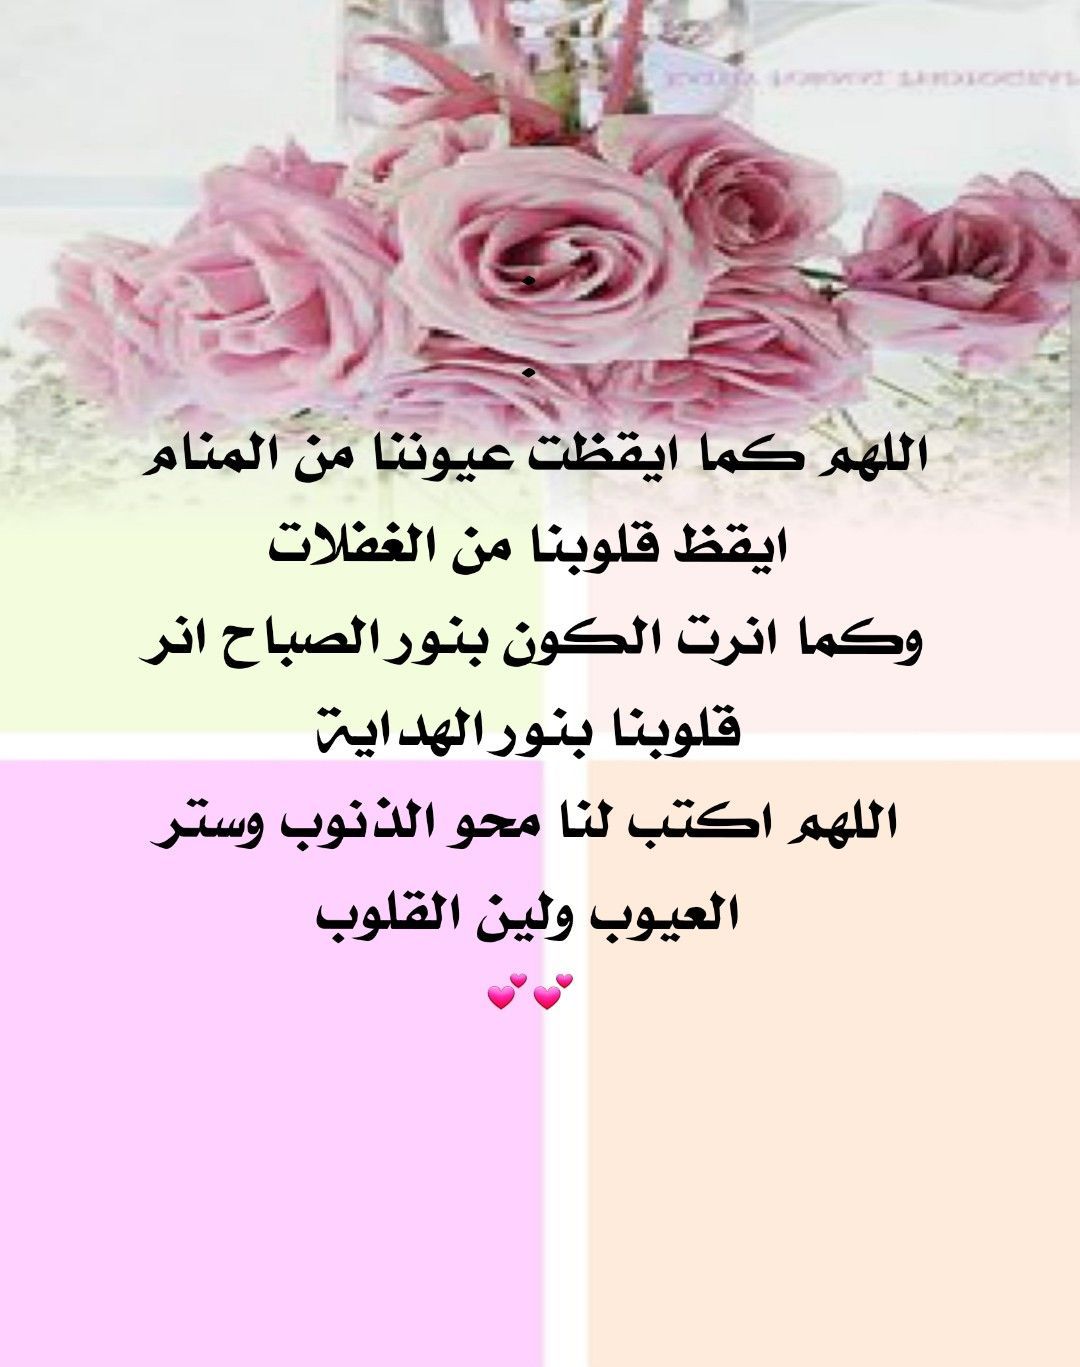 Pin By Eman Duniya On صباح الخير Love Messages Rose Flowers